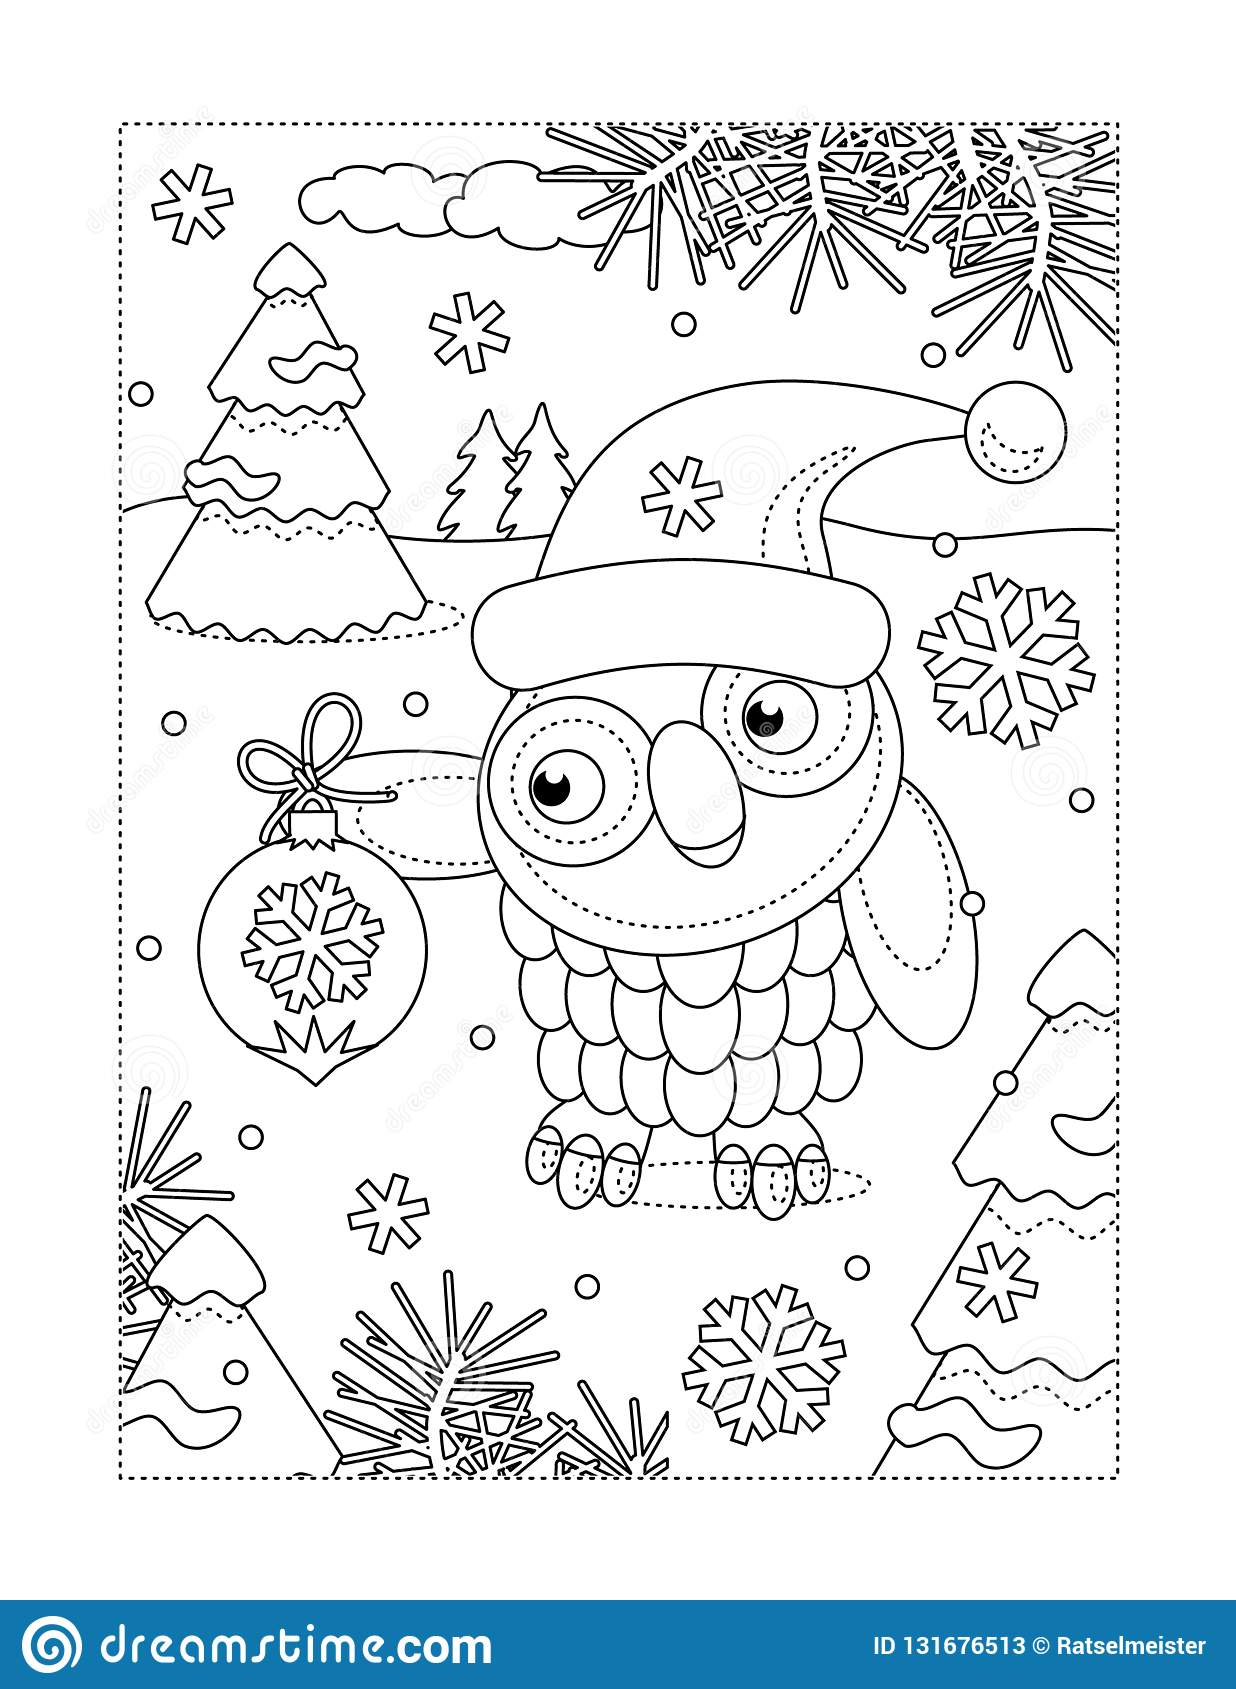 Owl Coloring Pages Stock Illustrations 196 Owl Coloring Pages Stock Illustrations Vectors Clipart Dreamstime